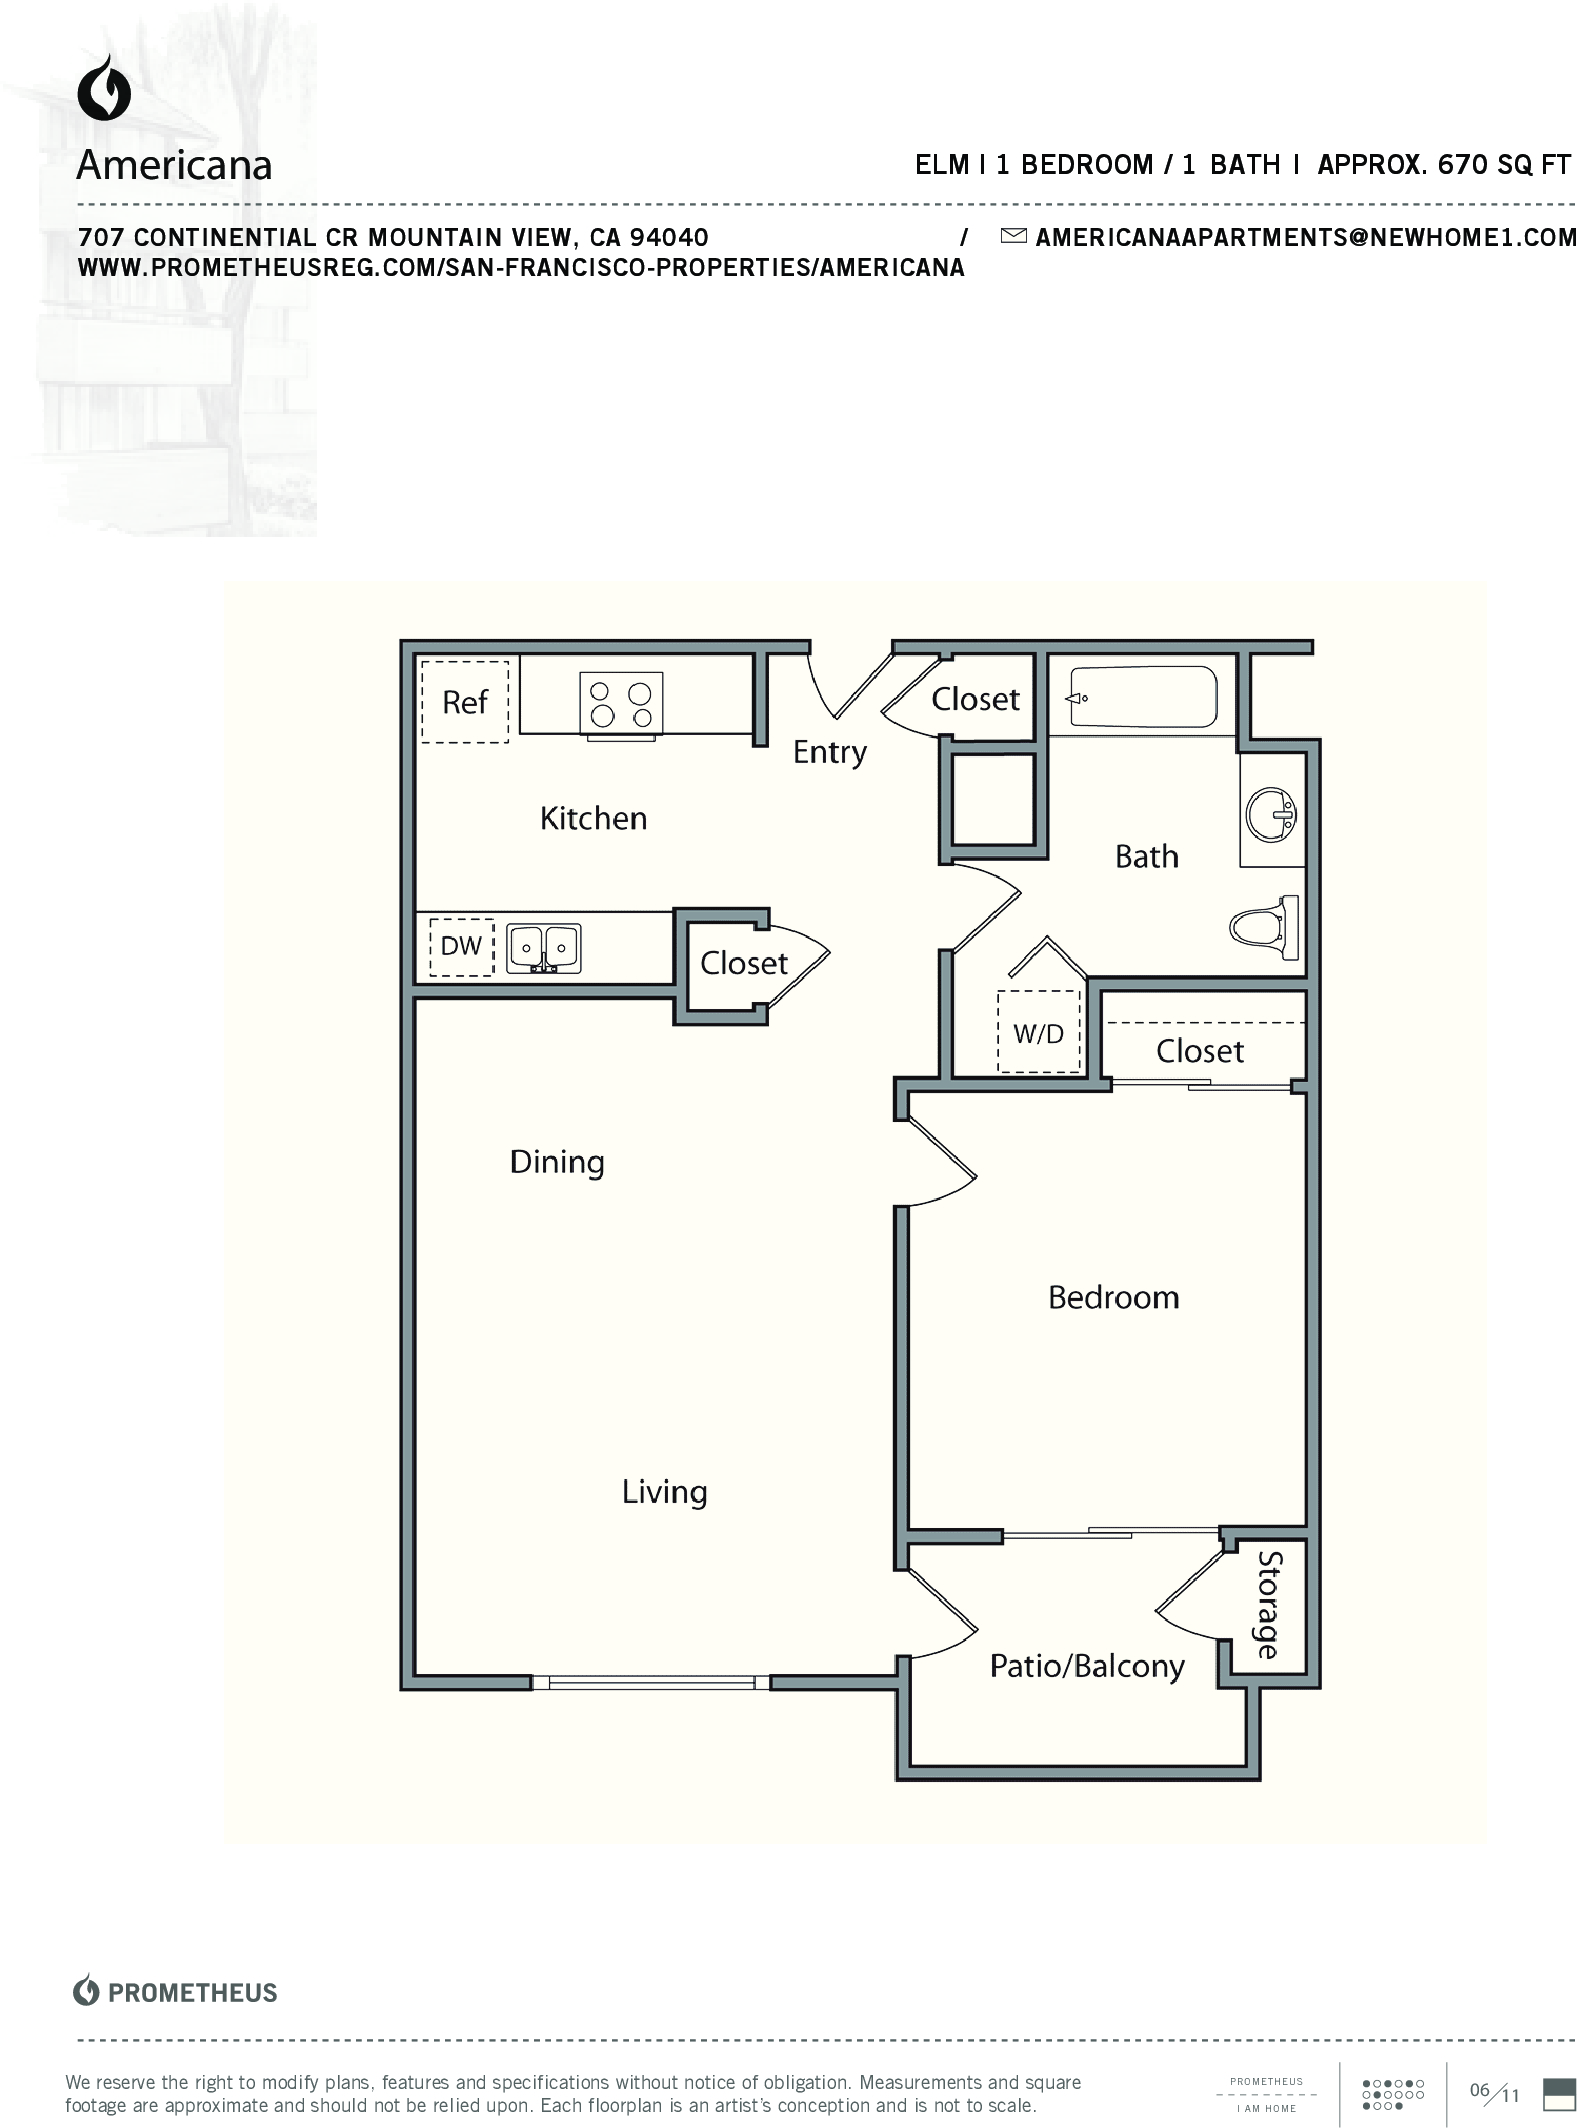 Americana apartments floor plans mountain view california for Mountain view floor plans